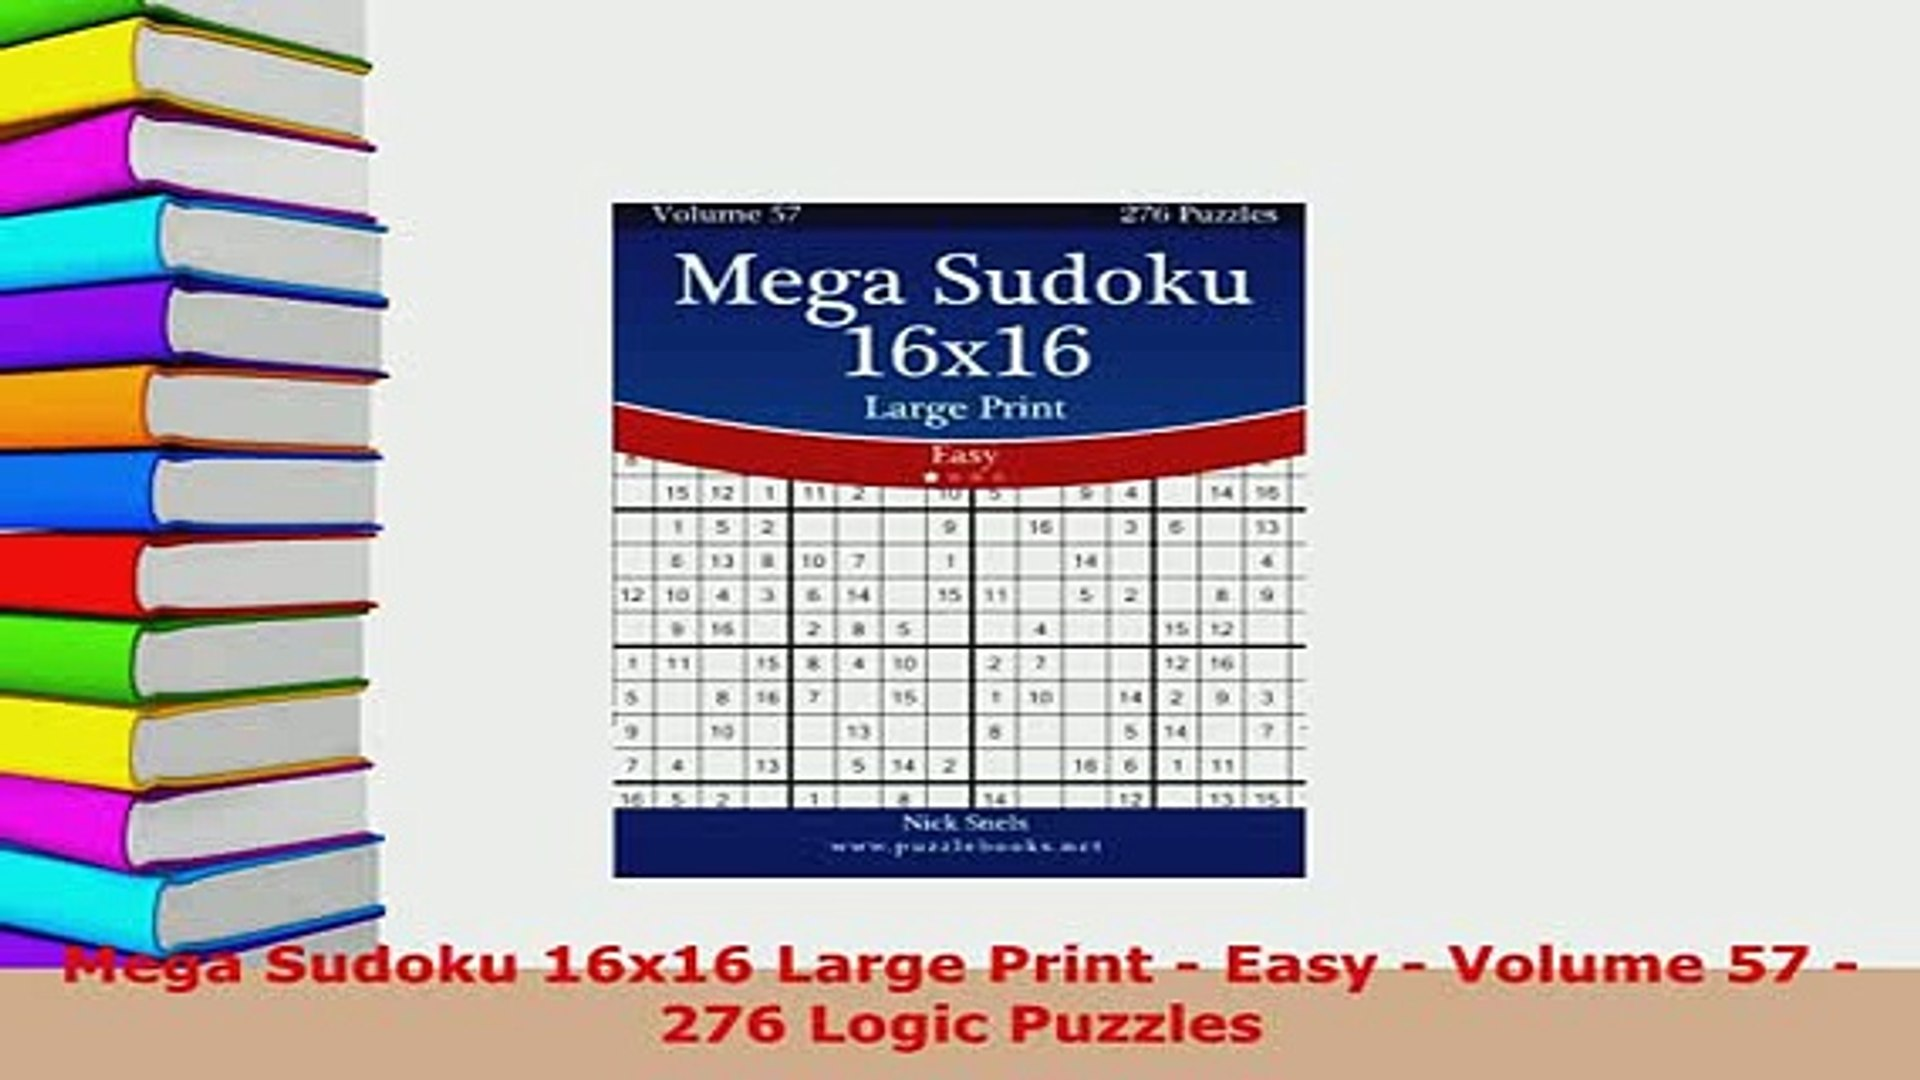 image relating to Logic Puzzles Easy Printable identified as Down load Mega Sudoku 16x16 Massive Print Uncomplicated Quantity 57 276 Logic Puzzles No cost Guides